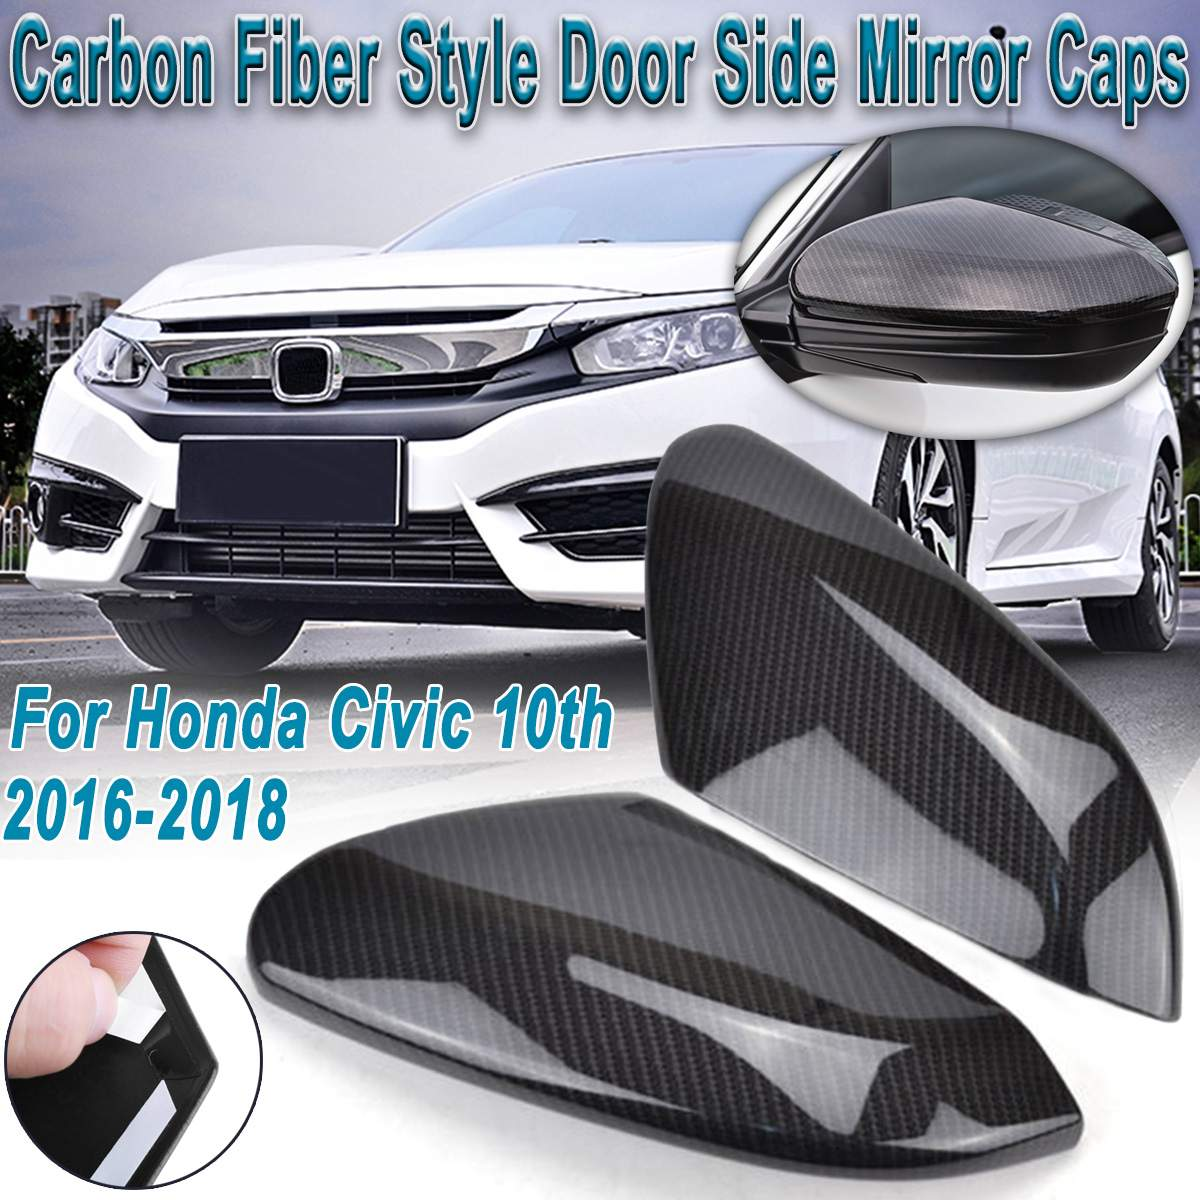 Carbon Fiber Side Mirror Cover For Honda Civic 10th 2016-2019 Rearview Cap